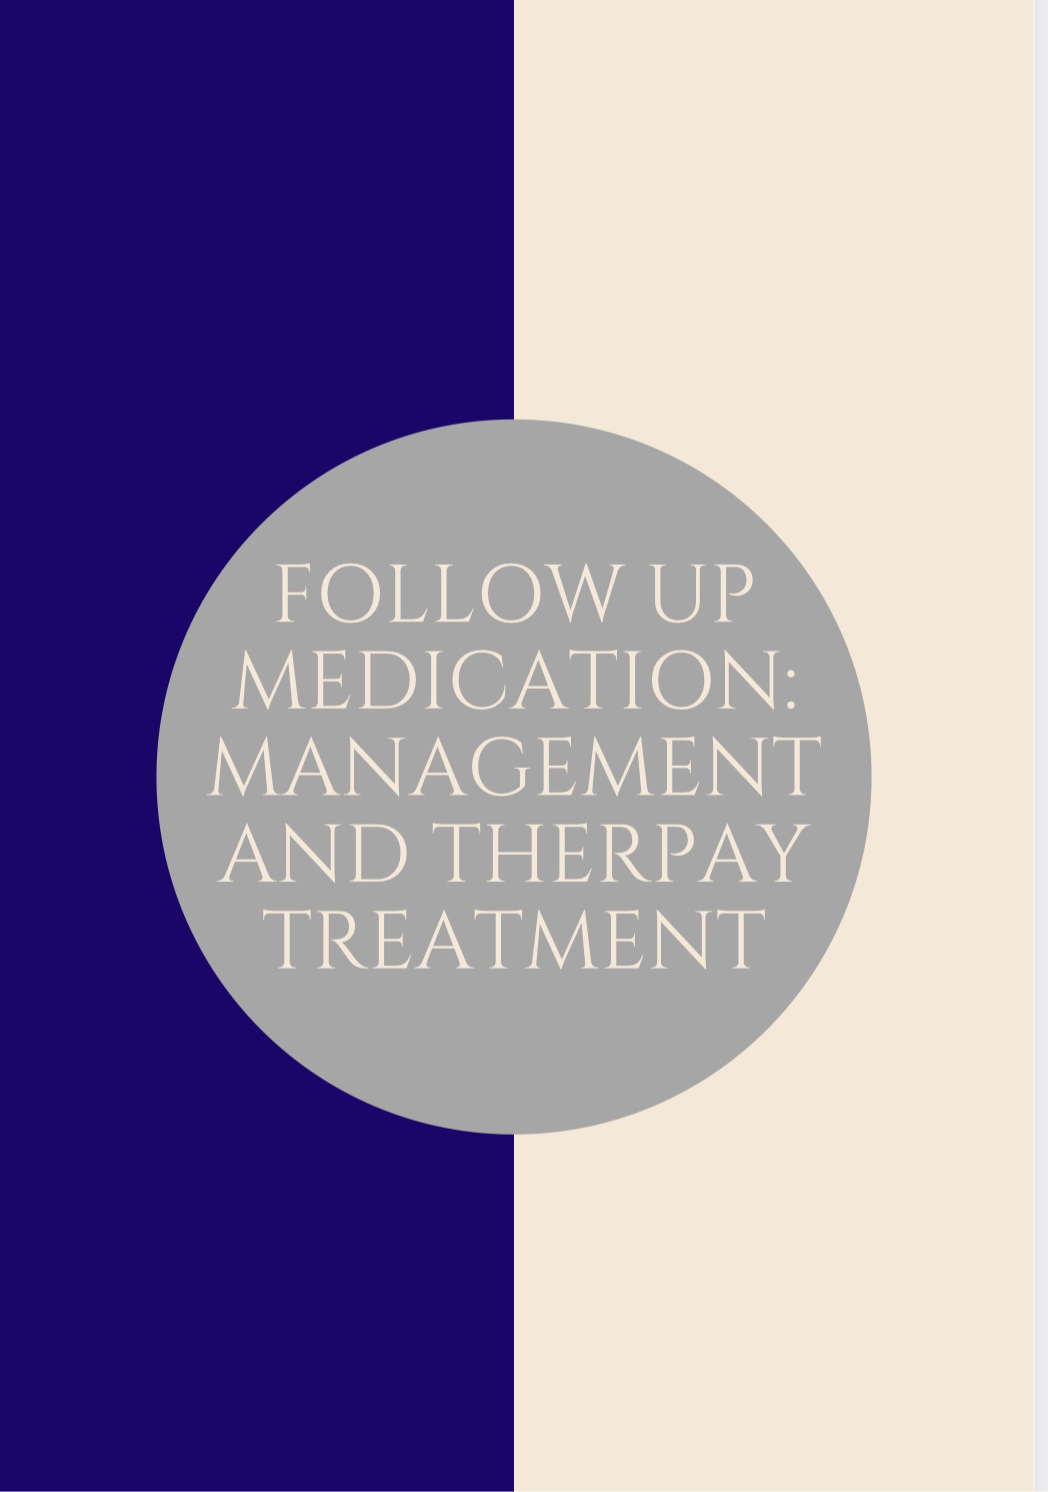 Follow-Up Medication:Management&Therapy